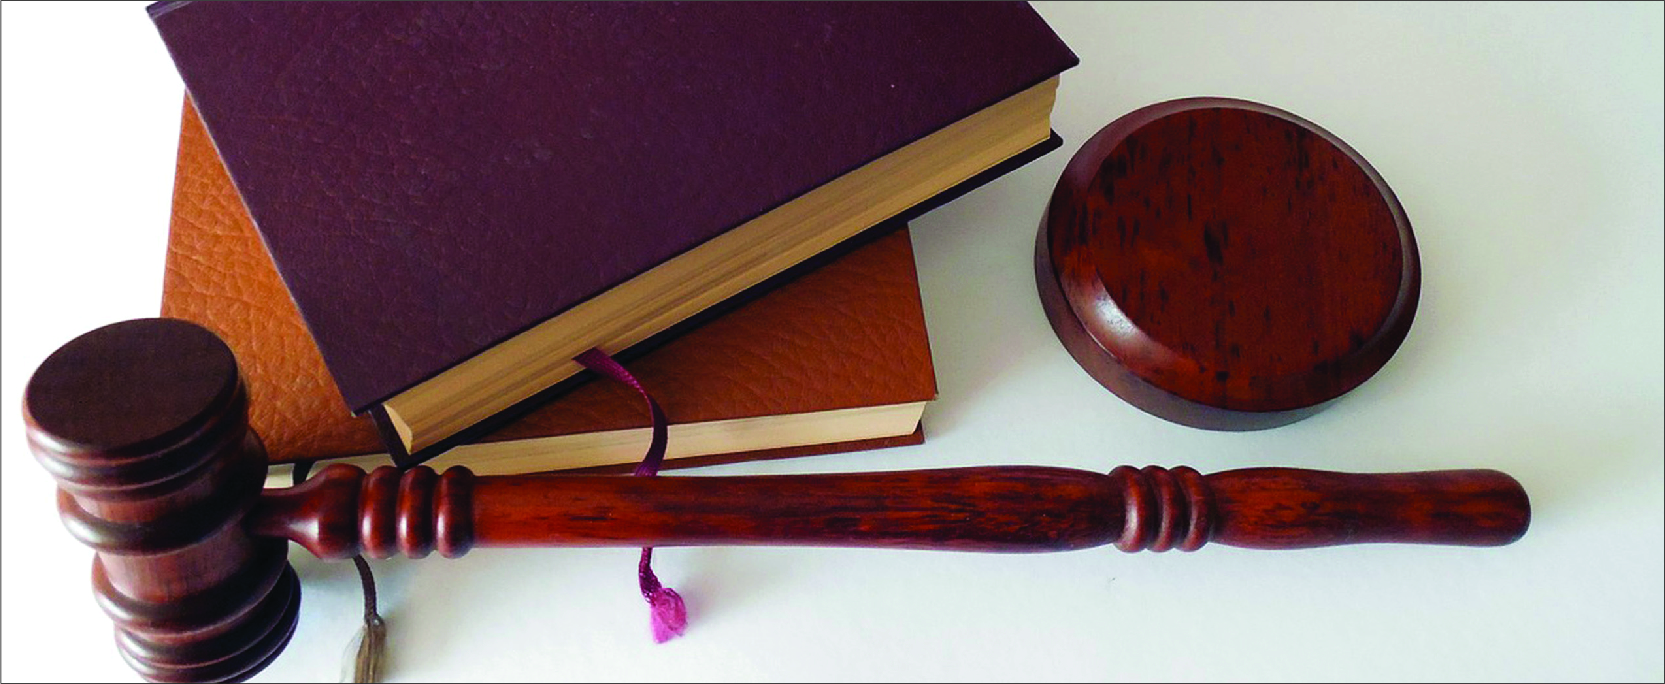 A photo of a gavel and two leather-bound books.